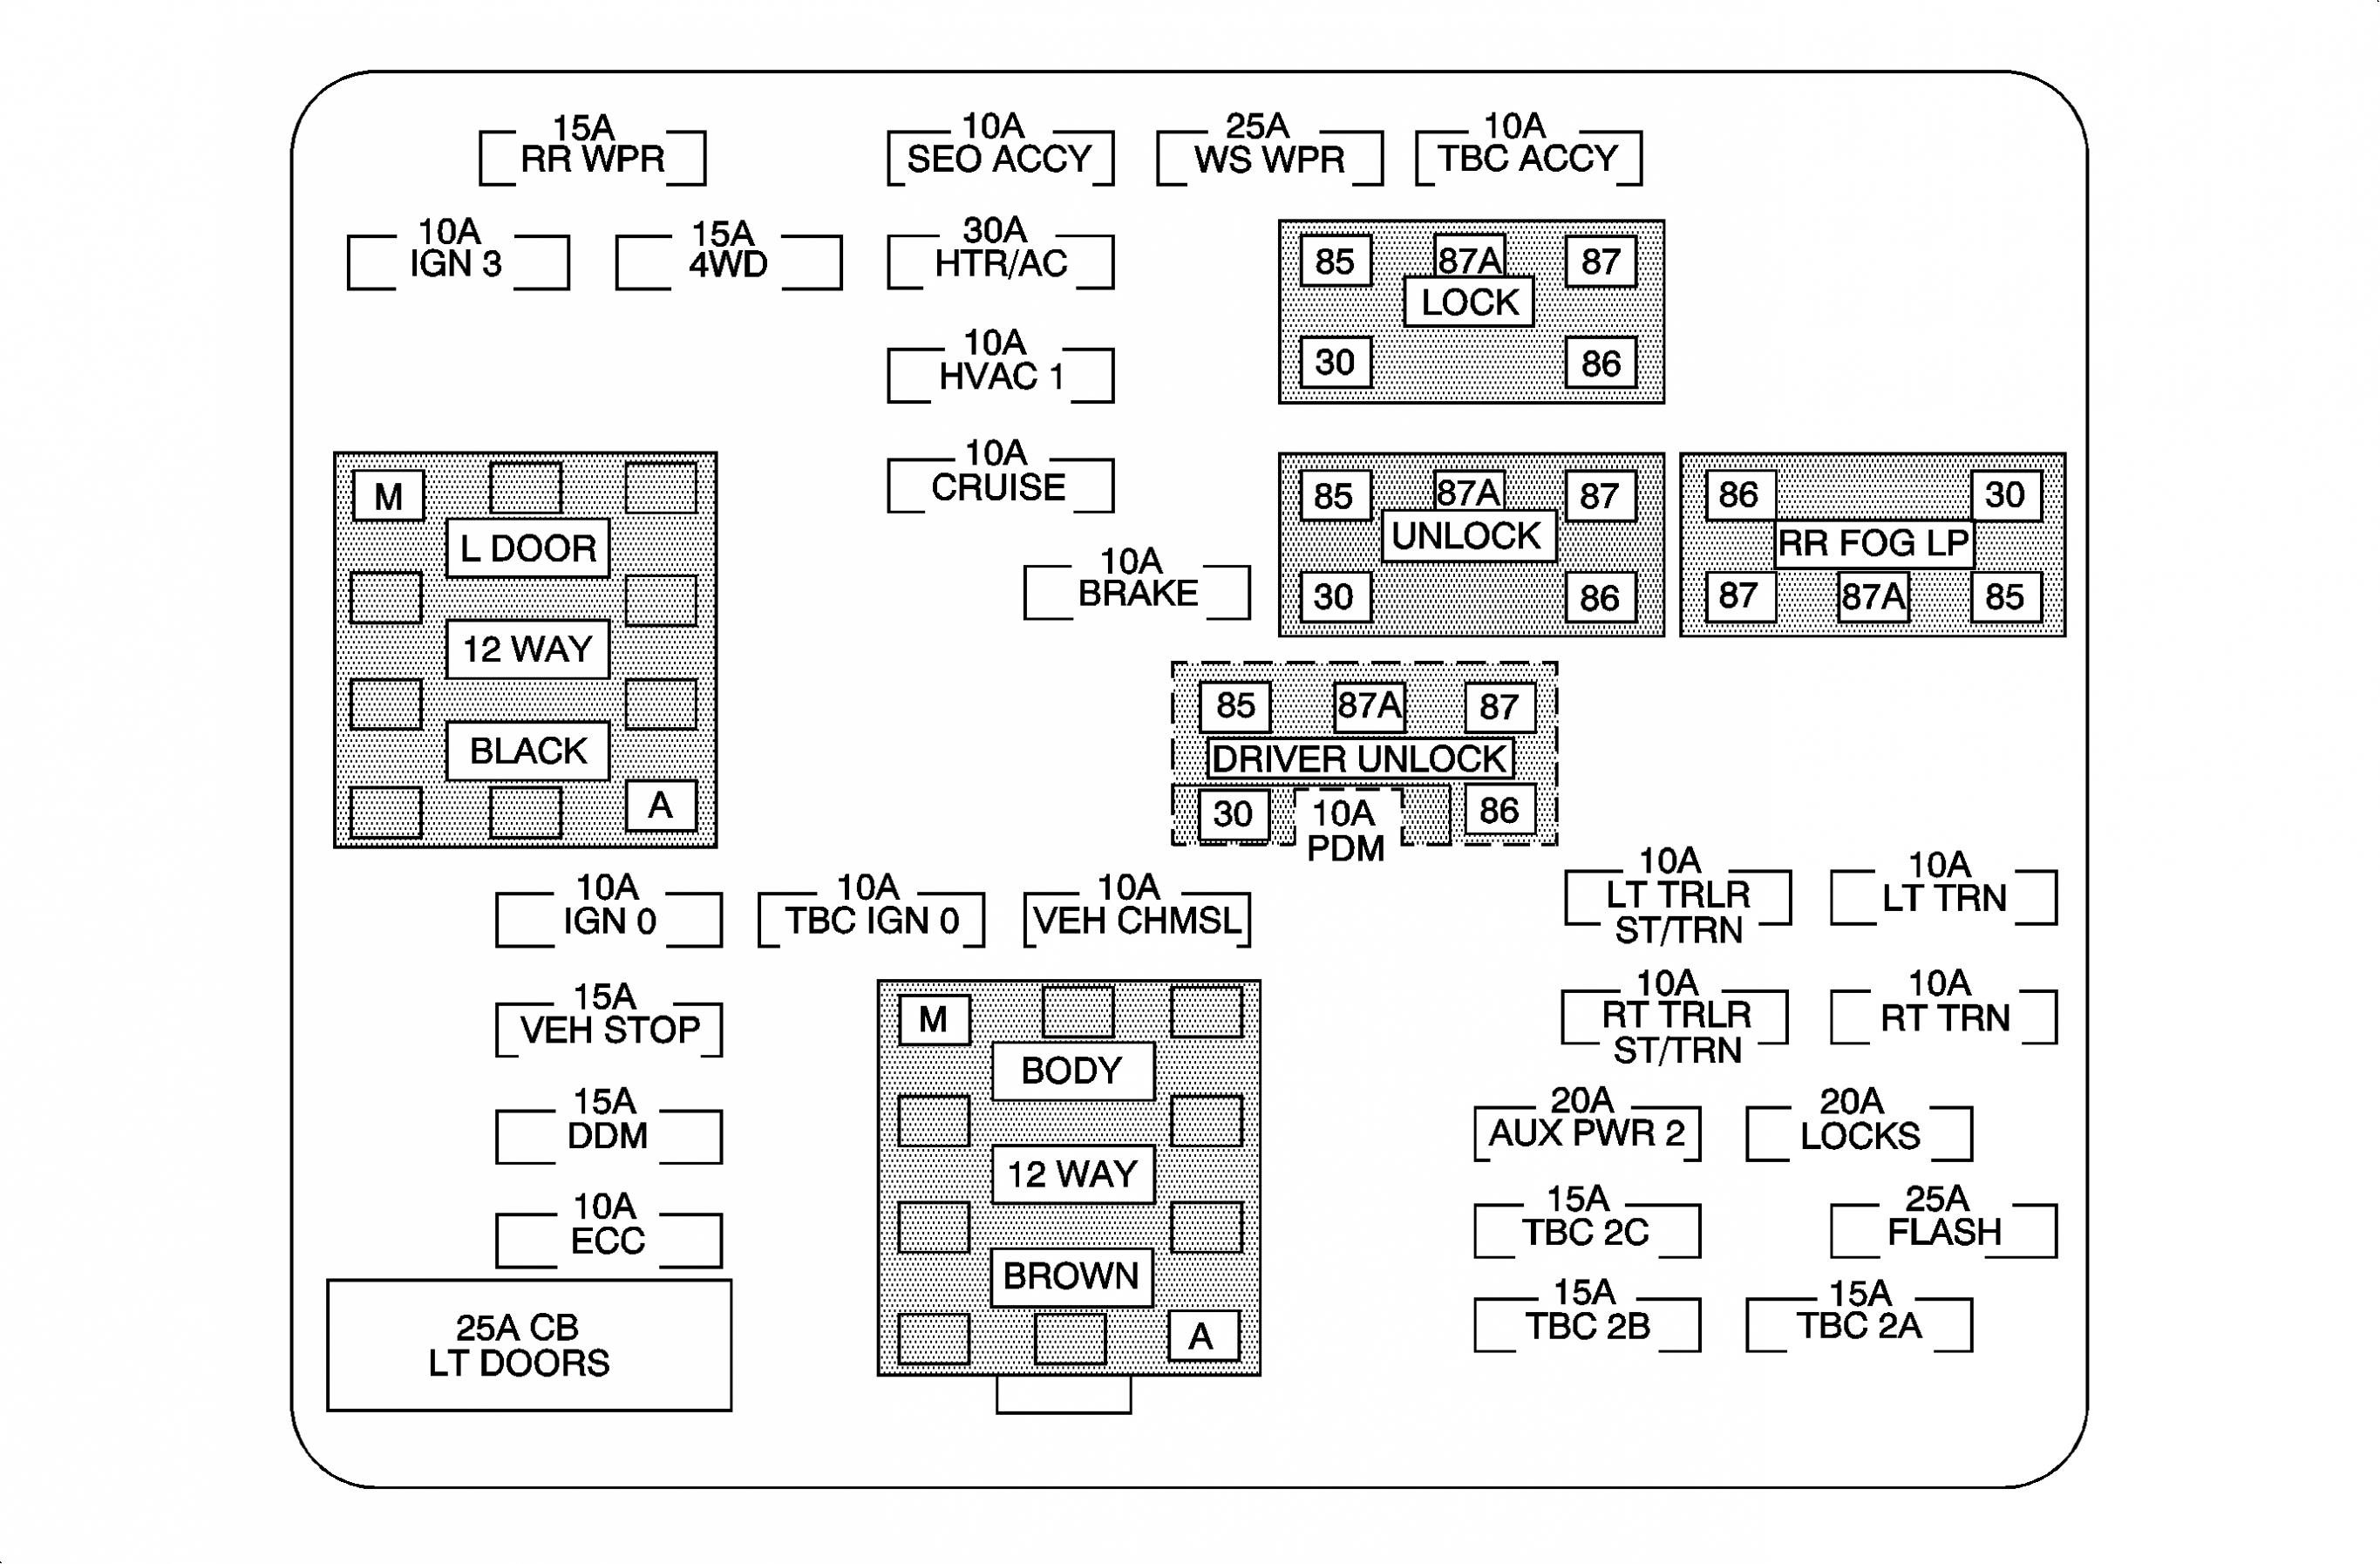 2005 Chevy Equinox Wiring Diagram 2005 Chevy Equinox Fuse Box Layout Smart Wiring Diagrams • Types